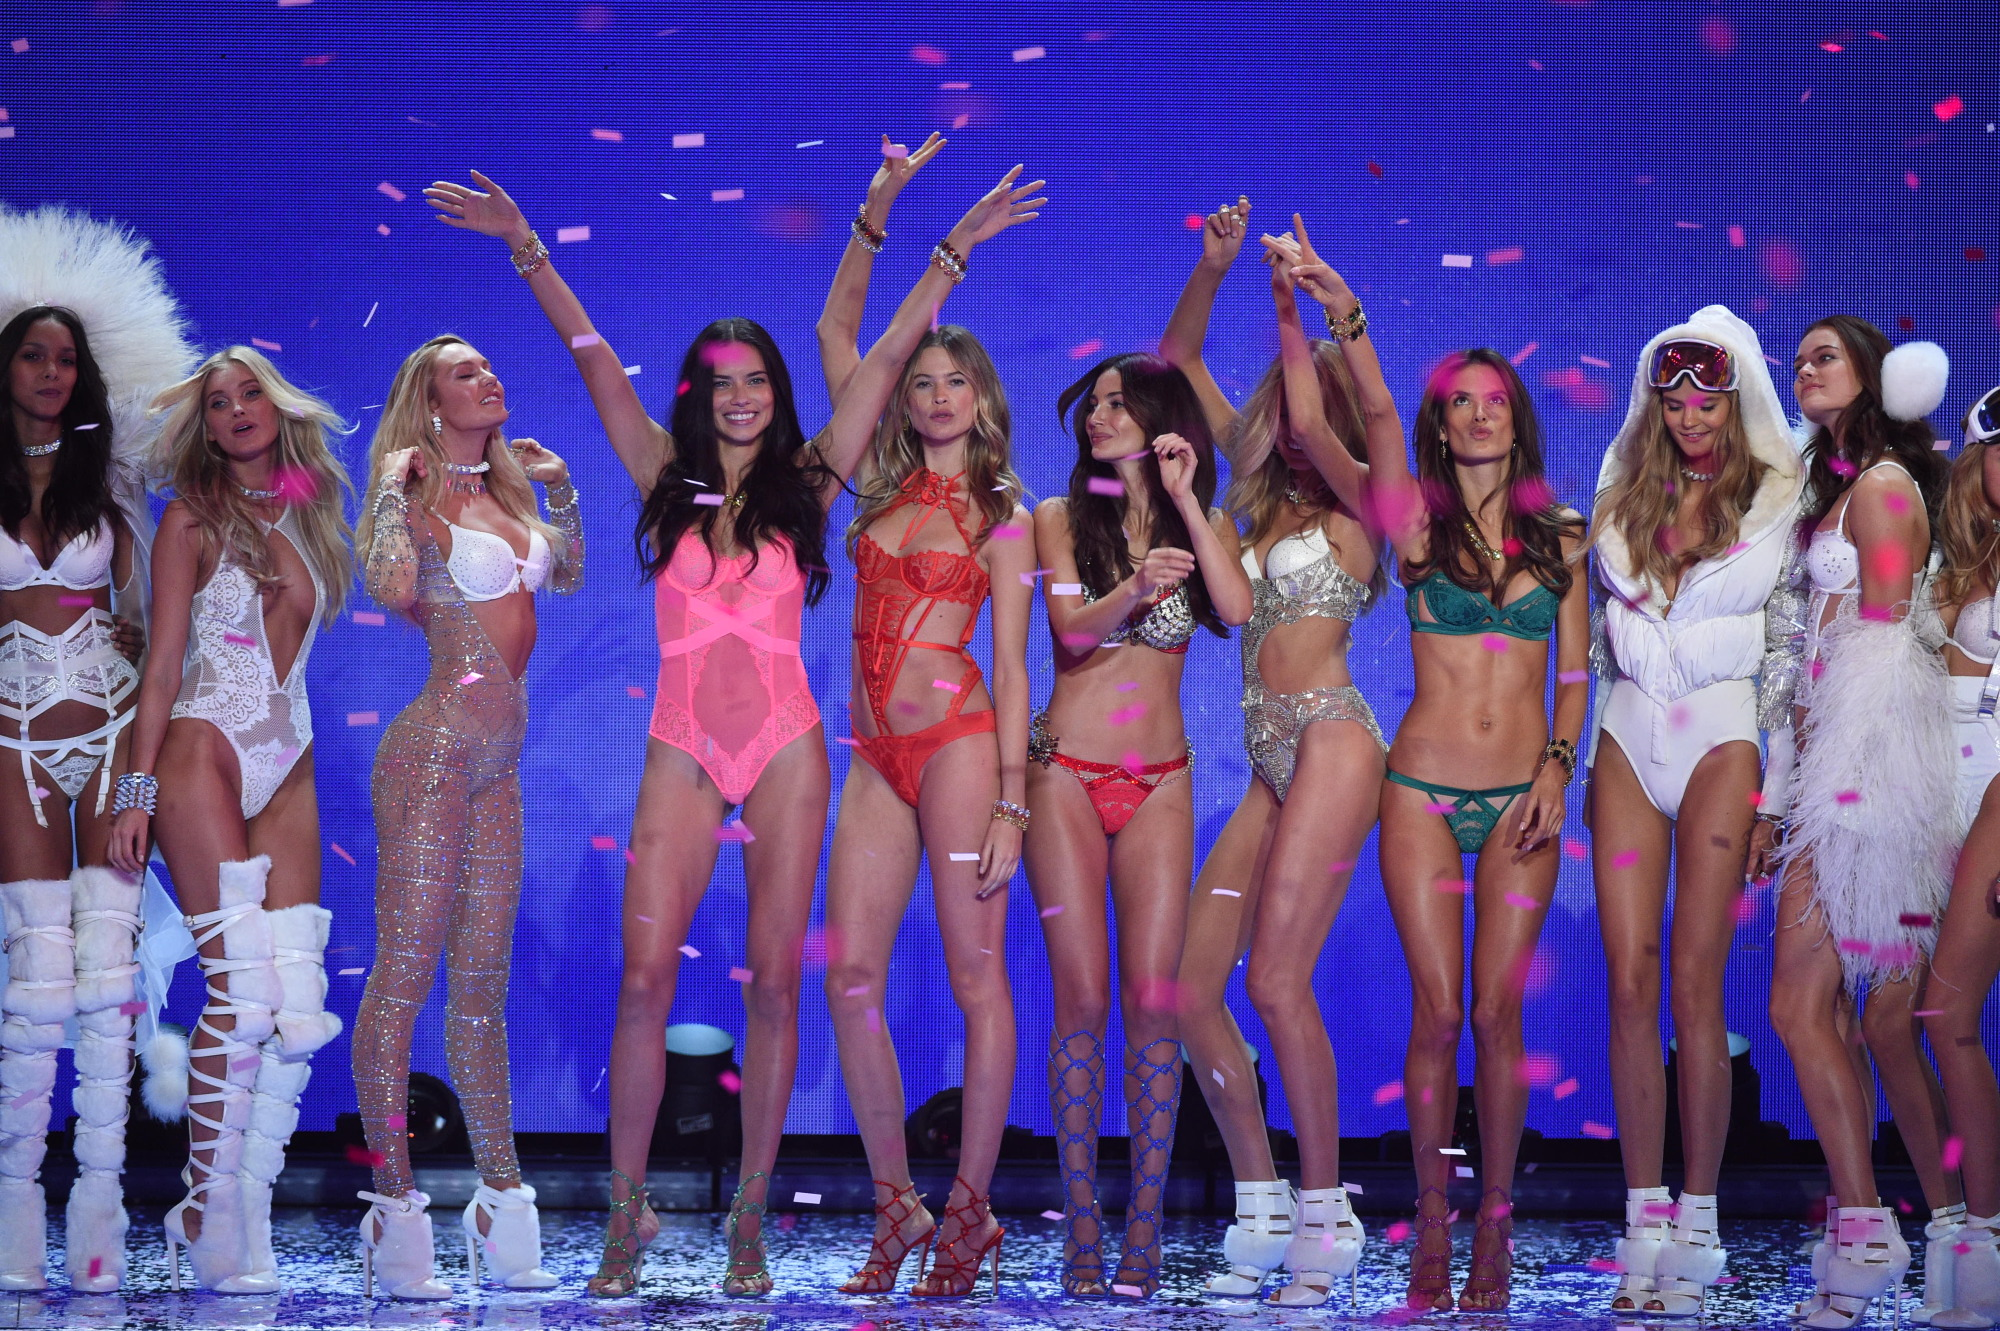 The Victoria's Secret models' Mannequin Challenge will make you tired just watching